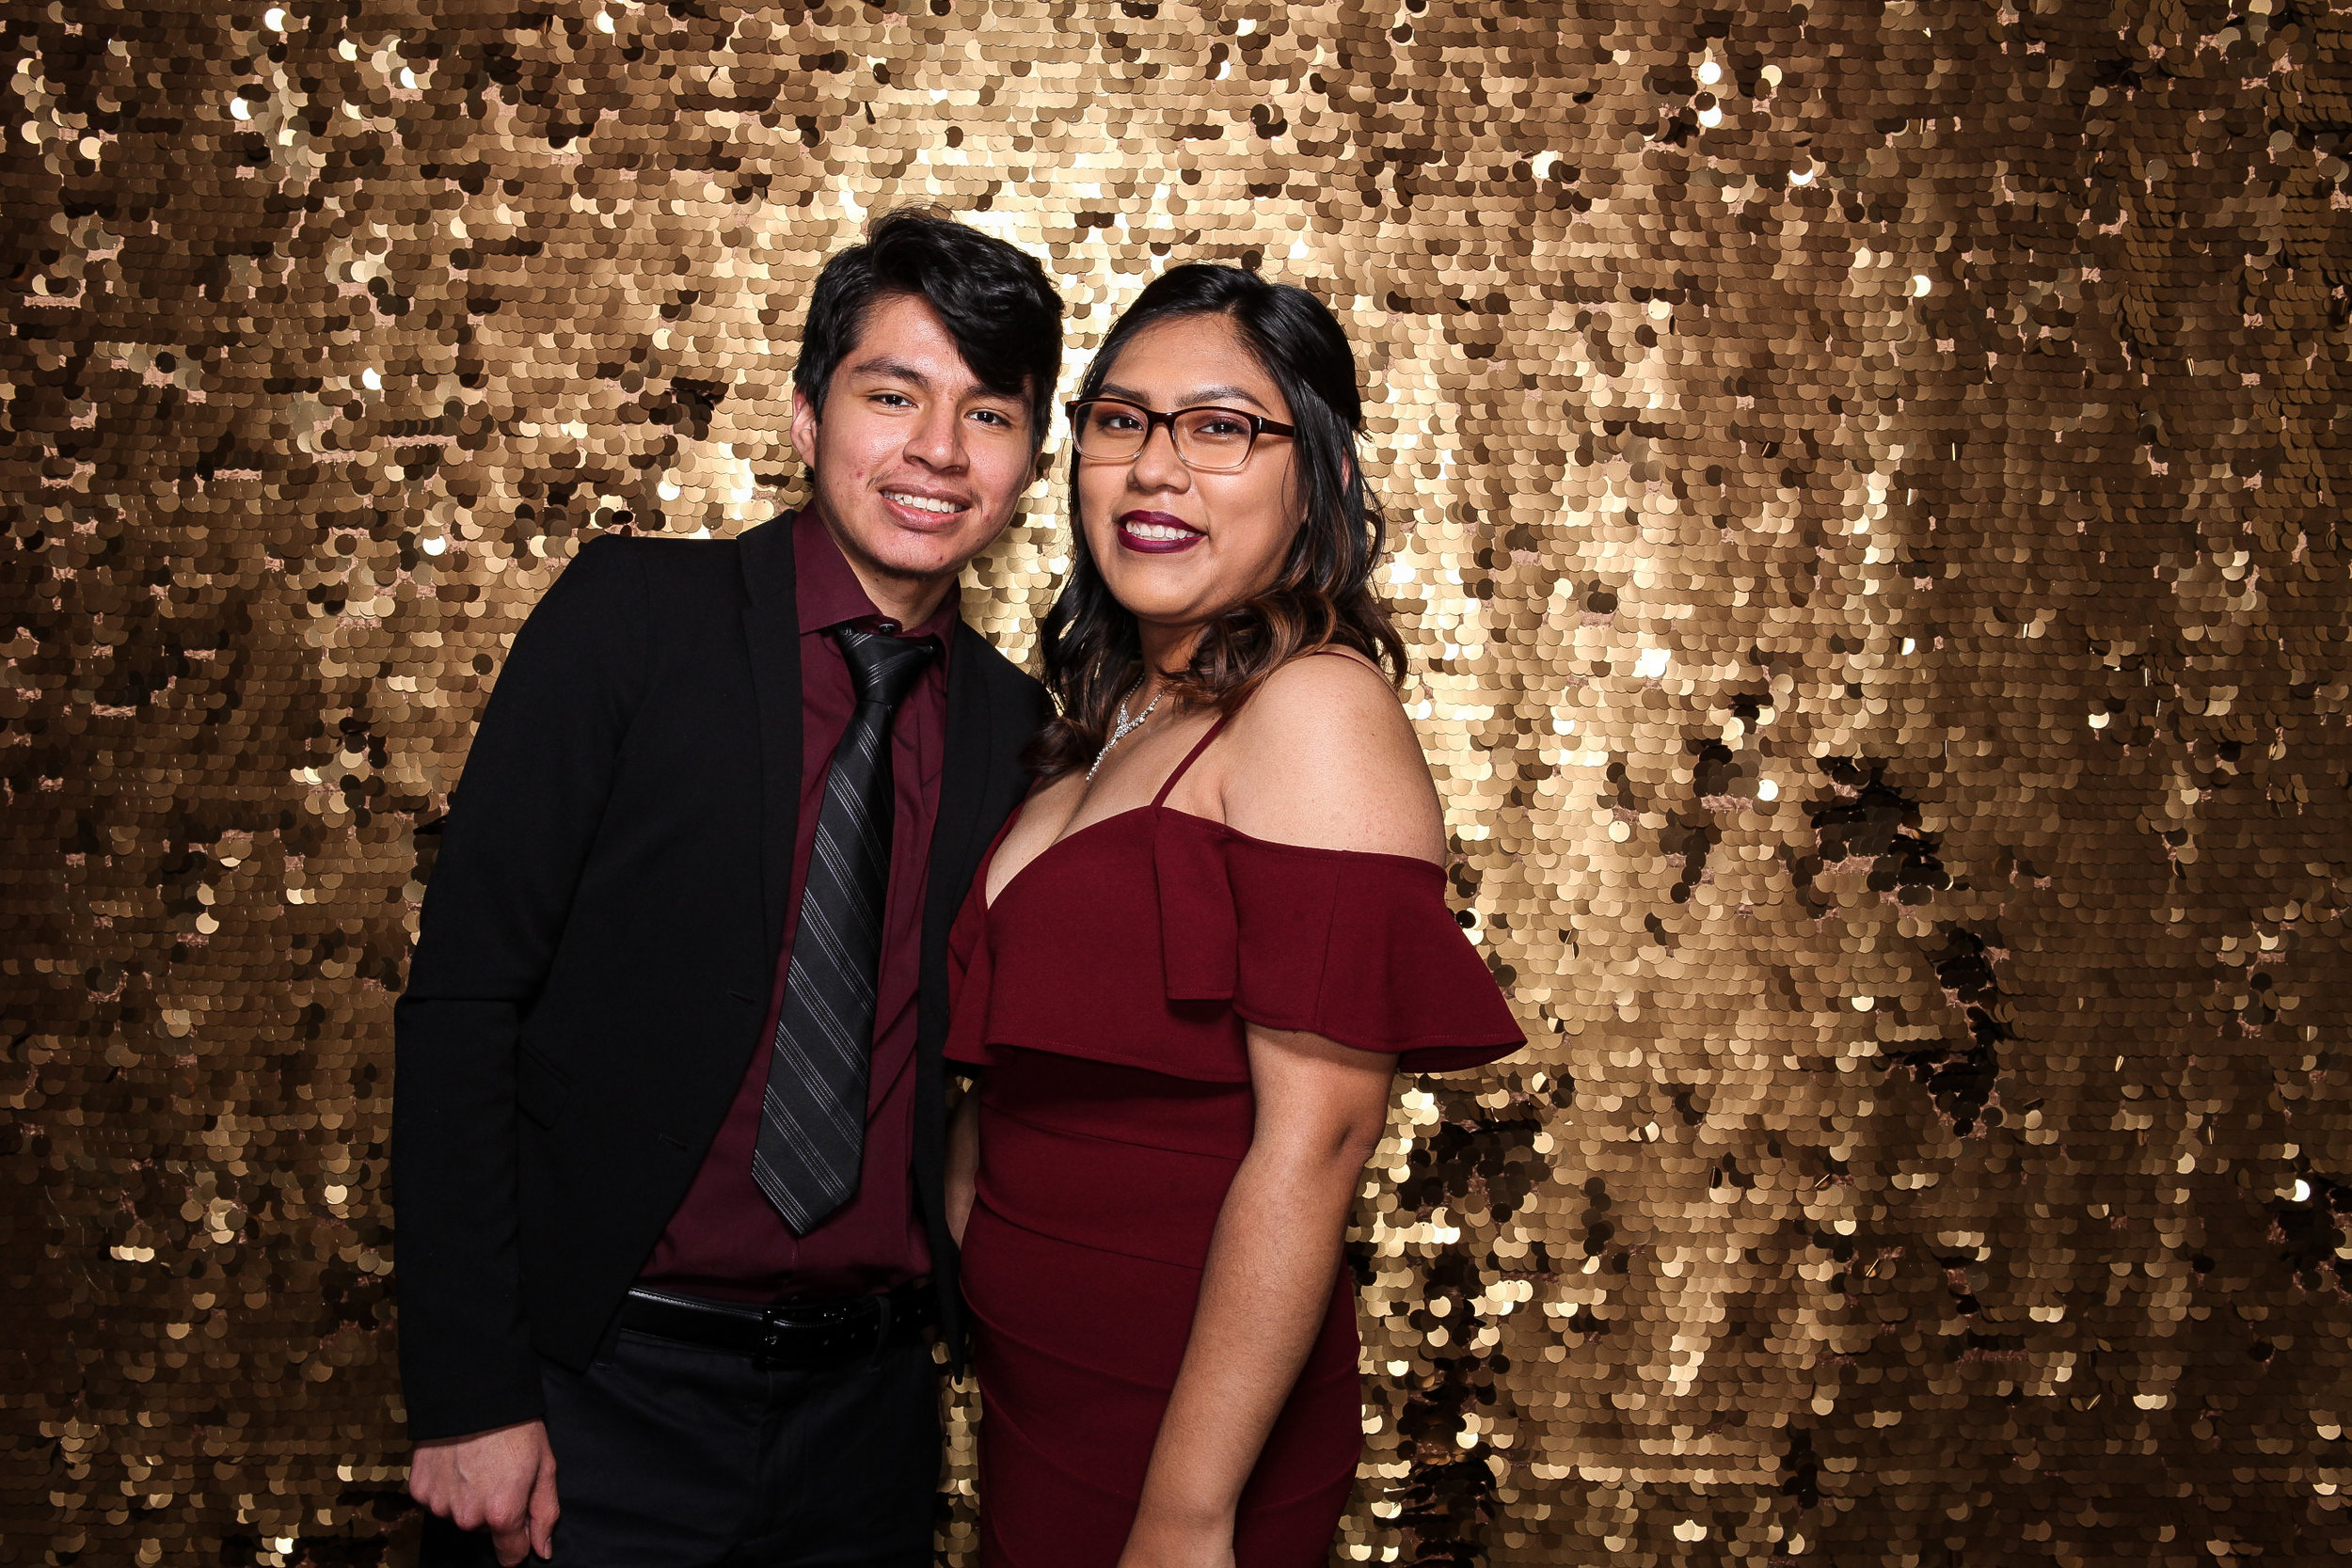 20190503_Adelphi_Senior_Formal-348.jpg